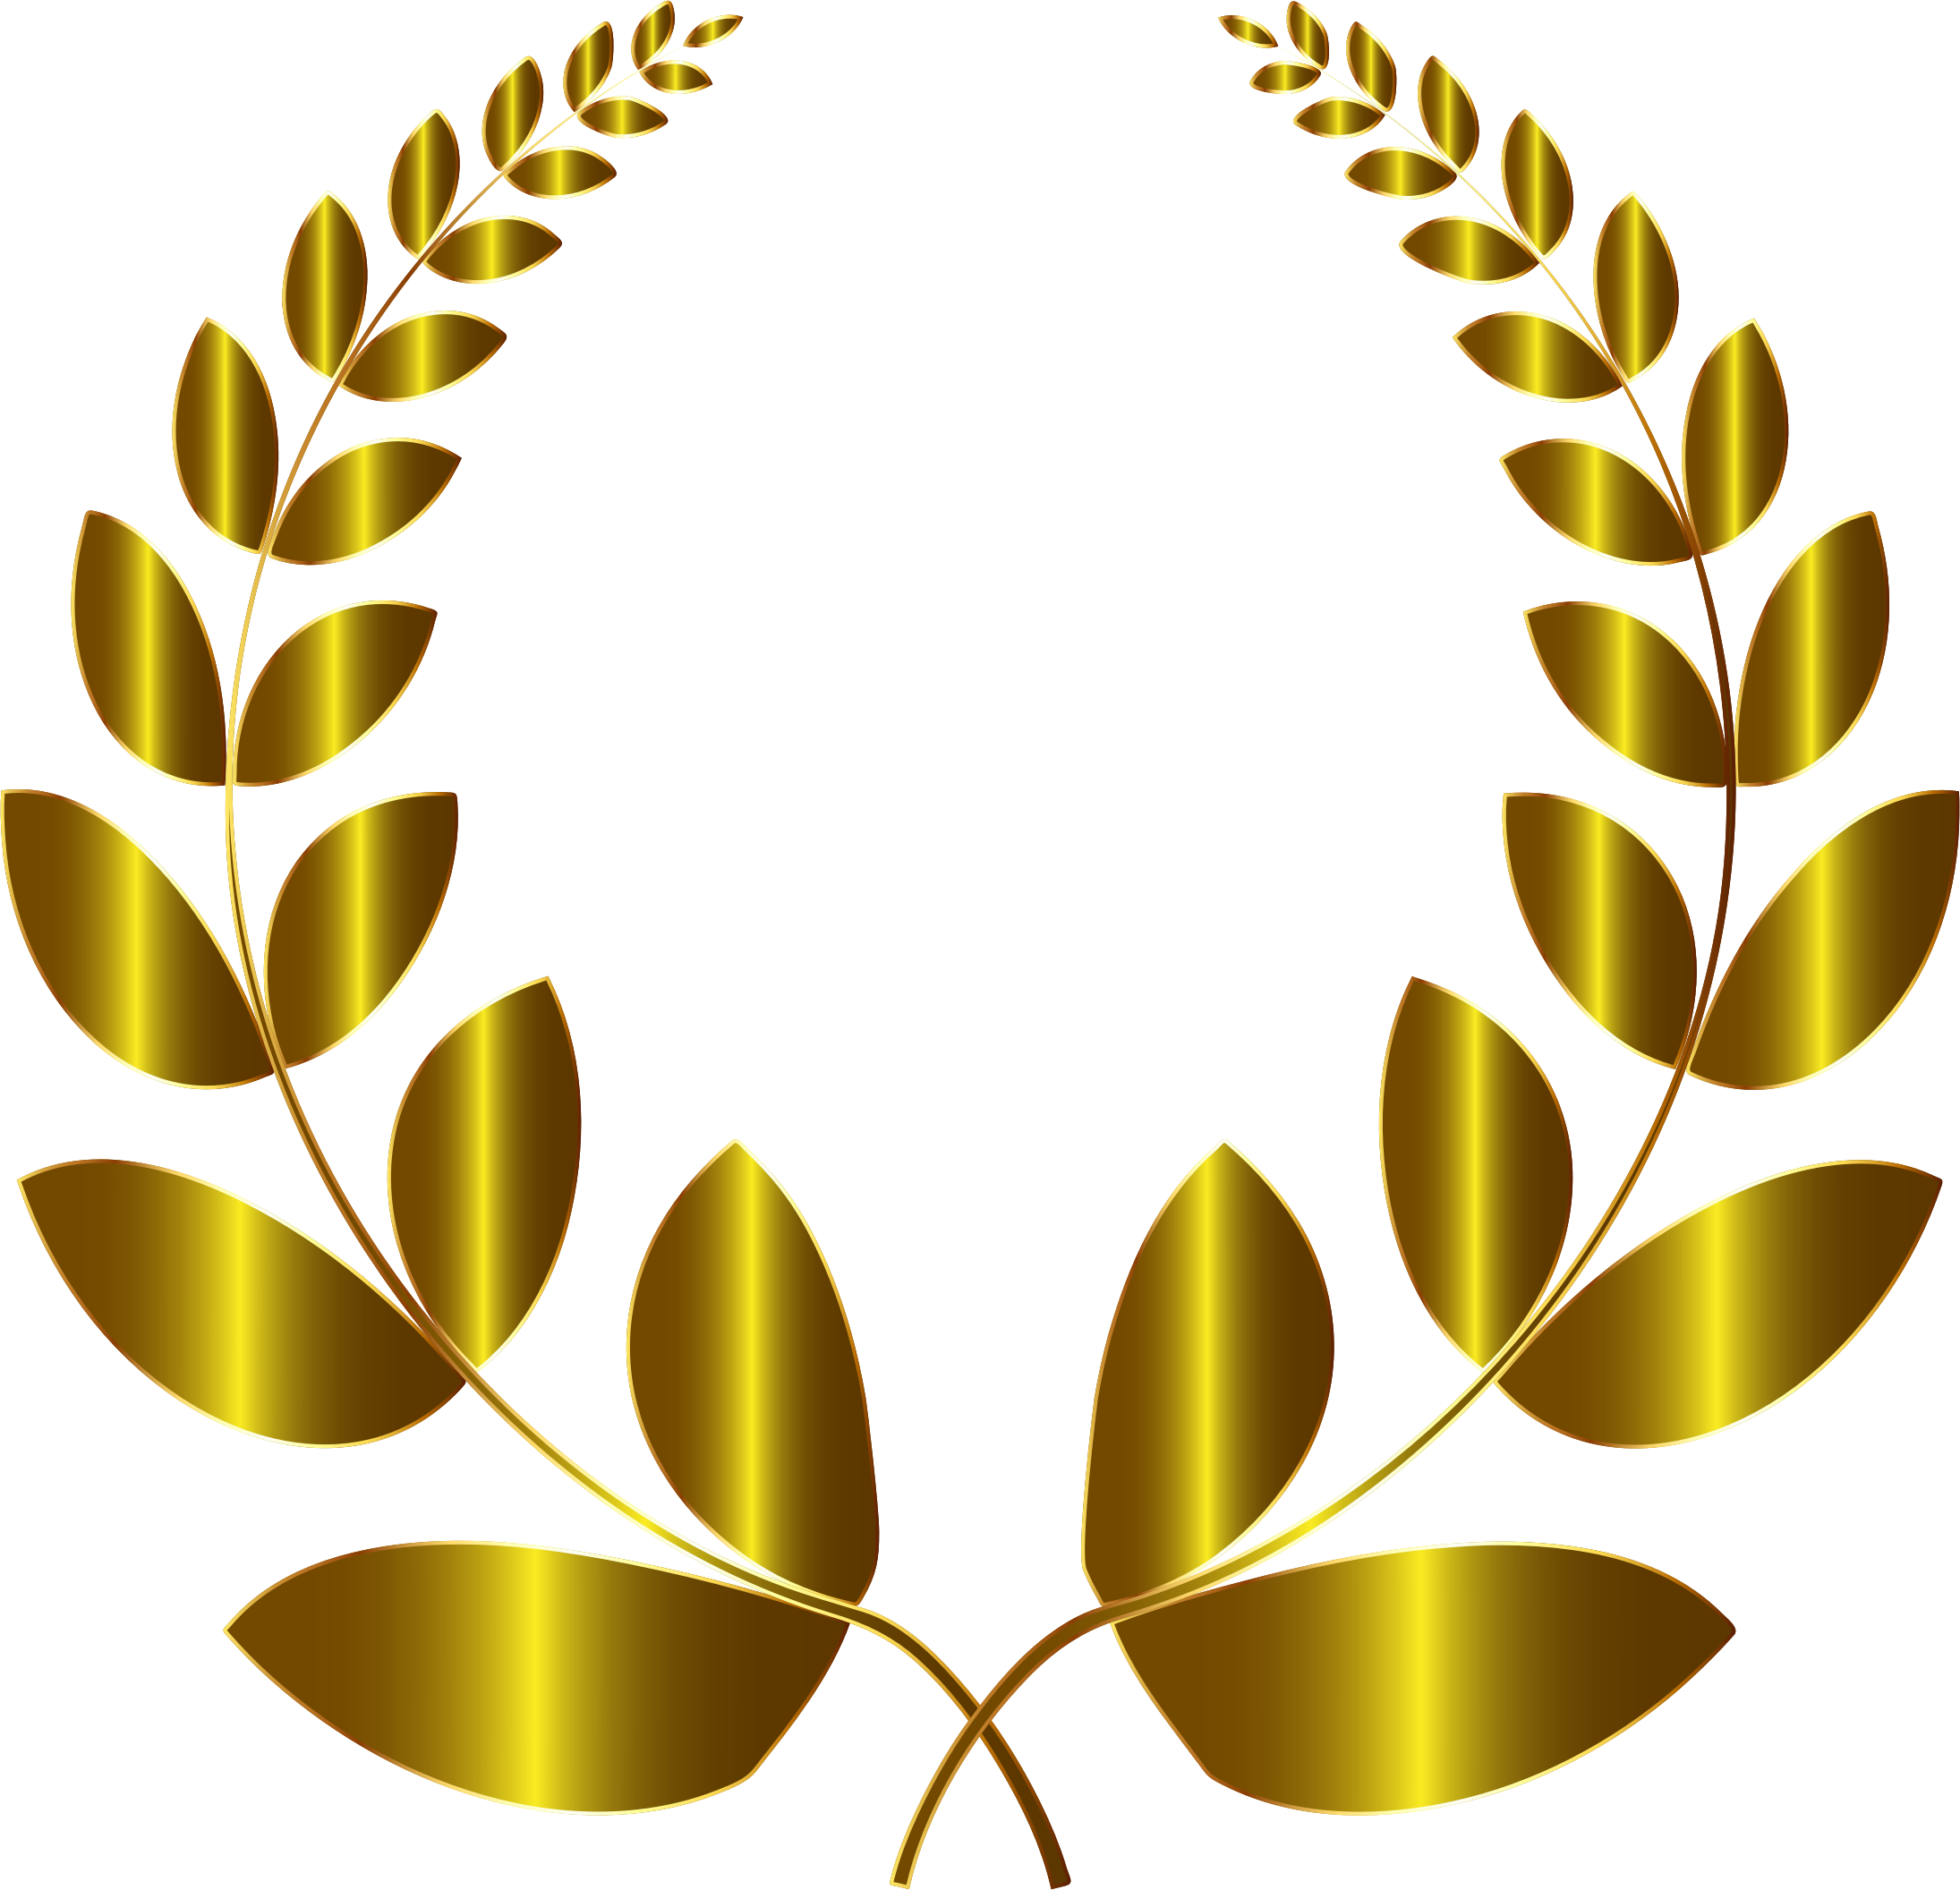 Gold Laurel Wreath 3 No Background by GDJ